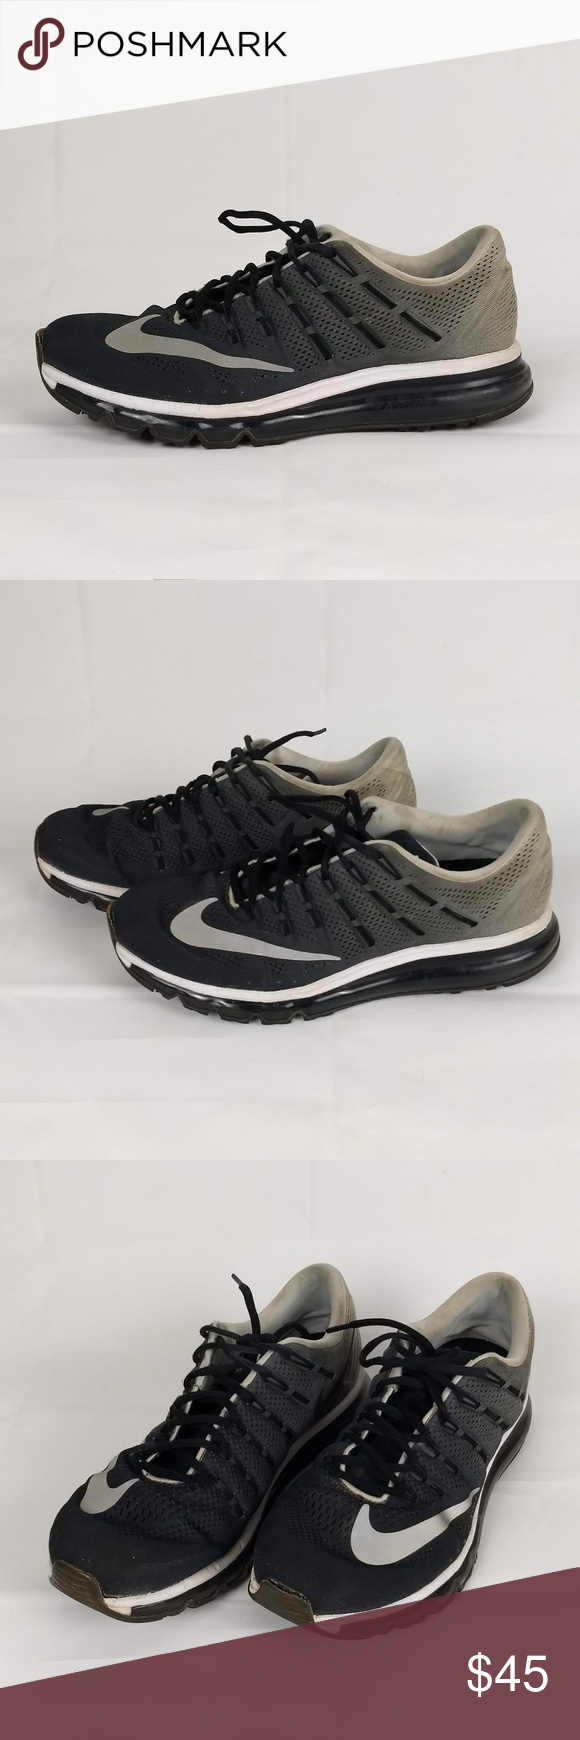 release date e4453 abb1b Nike Air Max 2016 Print Racer Shoes Size 11 Nike Air Max 2016 Print Shoes  Oreo Black   White 818135-020 US Mens Size 11  UK 10   EUR 45 Very good  preowned ...